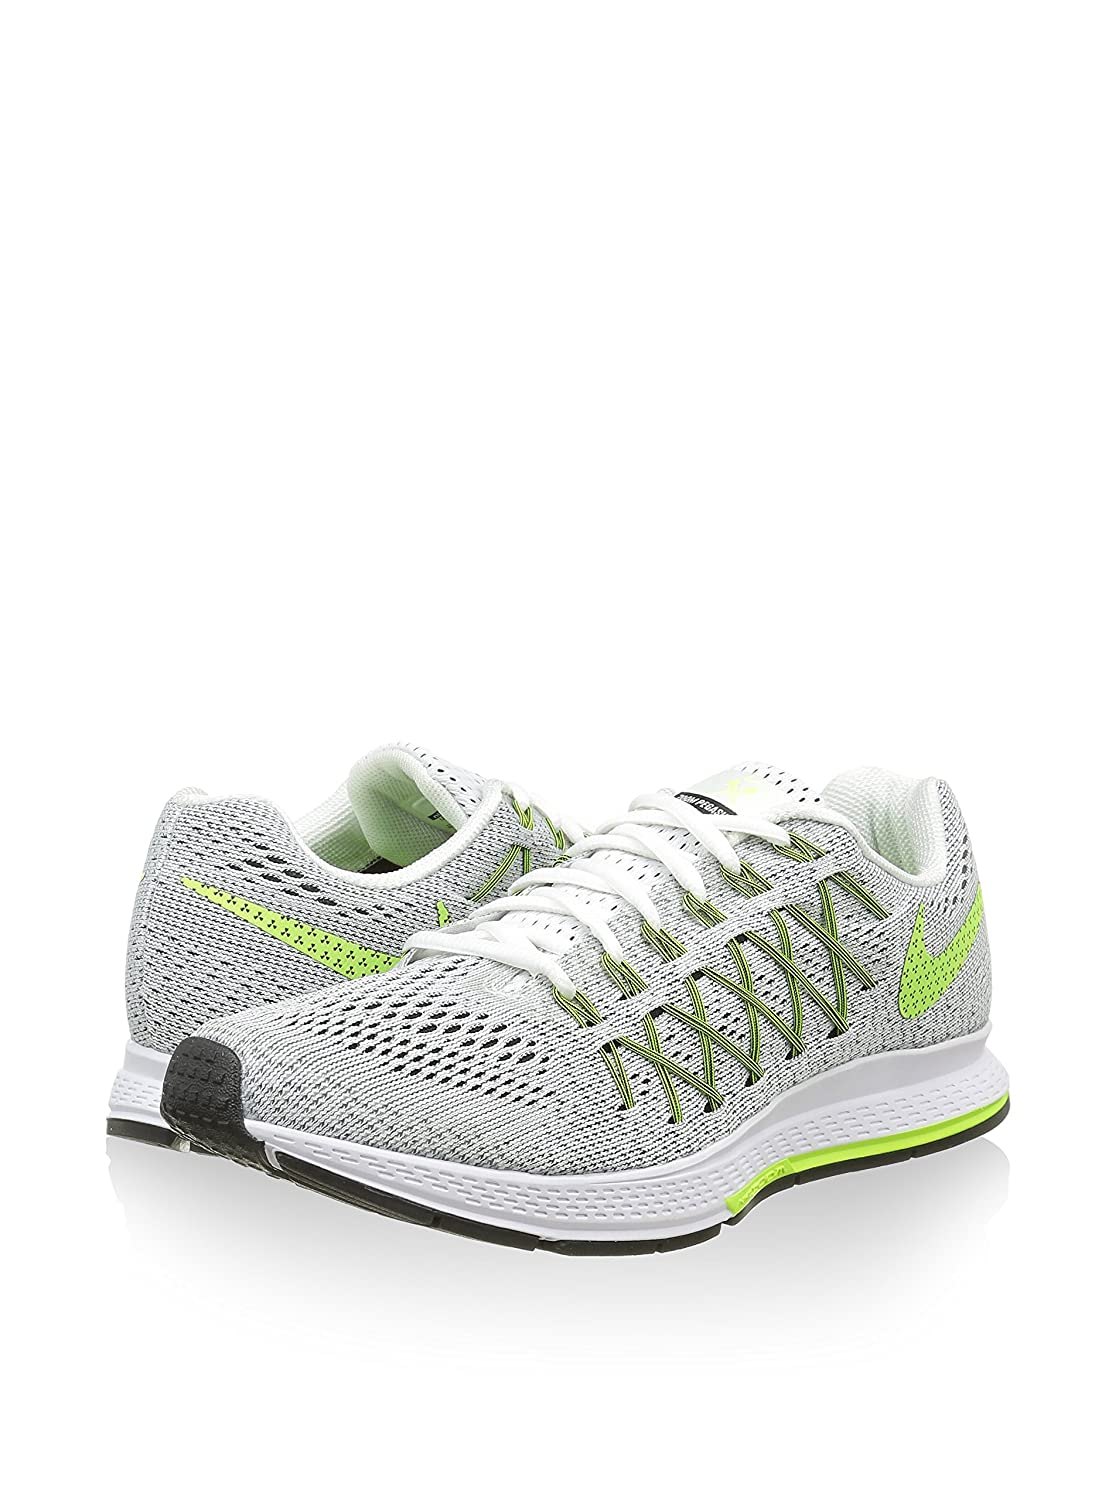 44c9fa5f0e7 ... netherlands amazon nike womens air zoom pegasus 32 cp running shoes  road running a5326 73f59